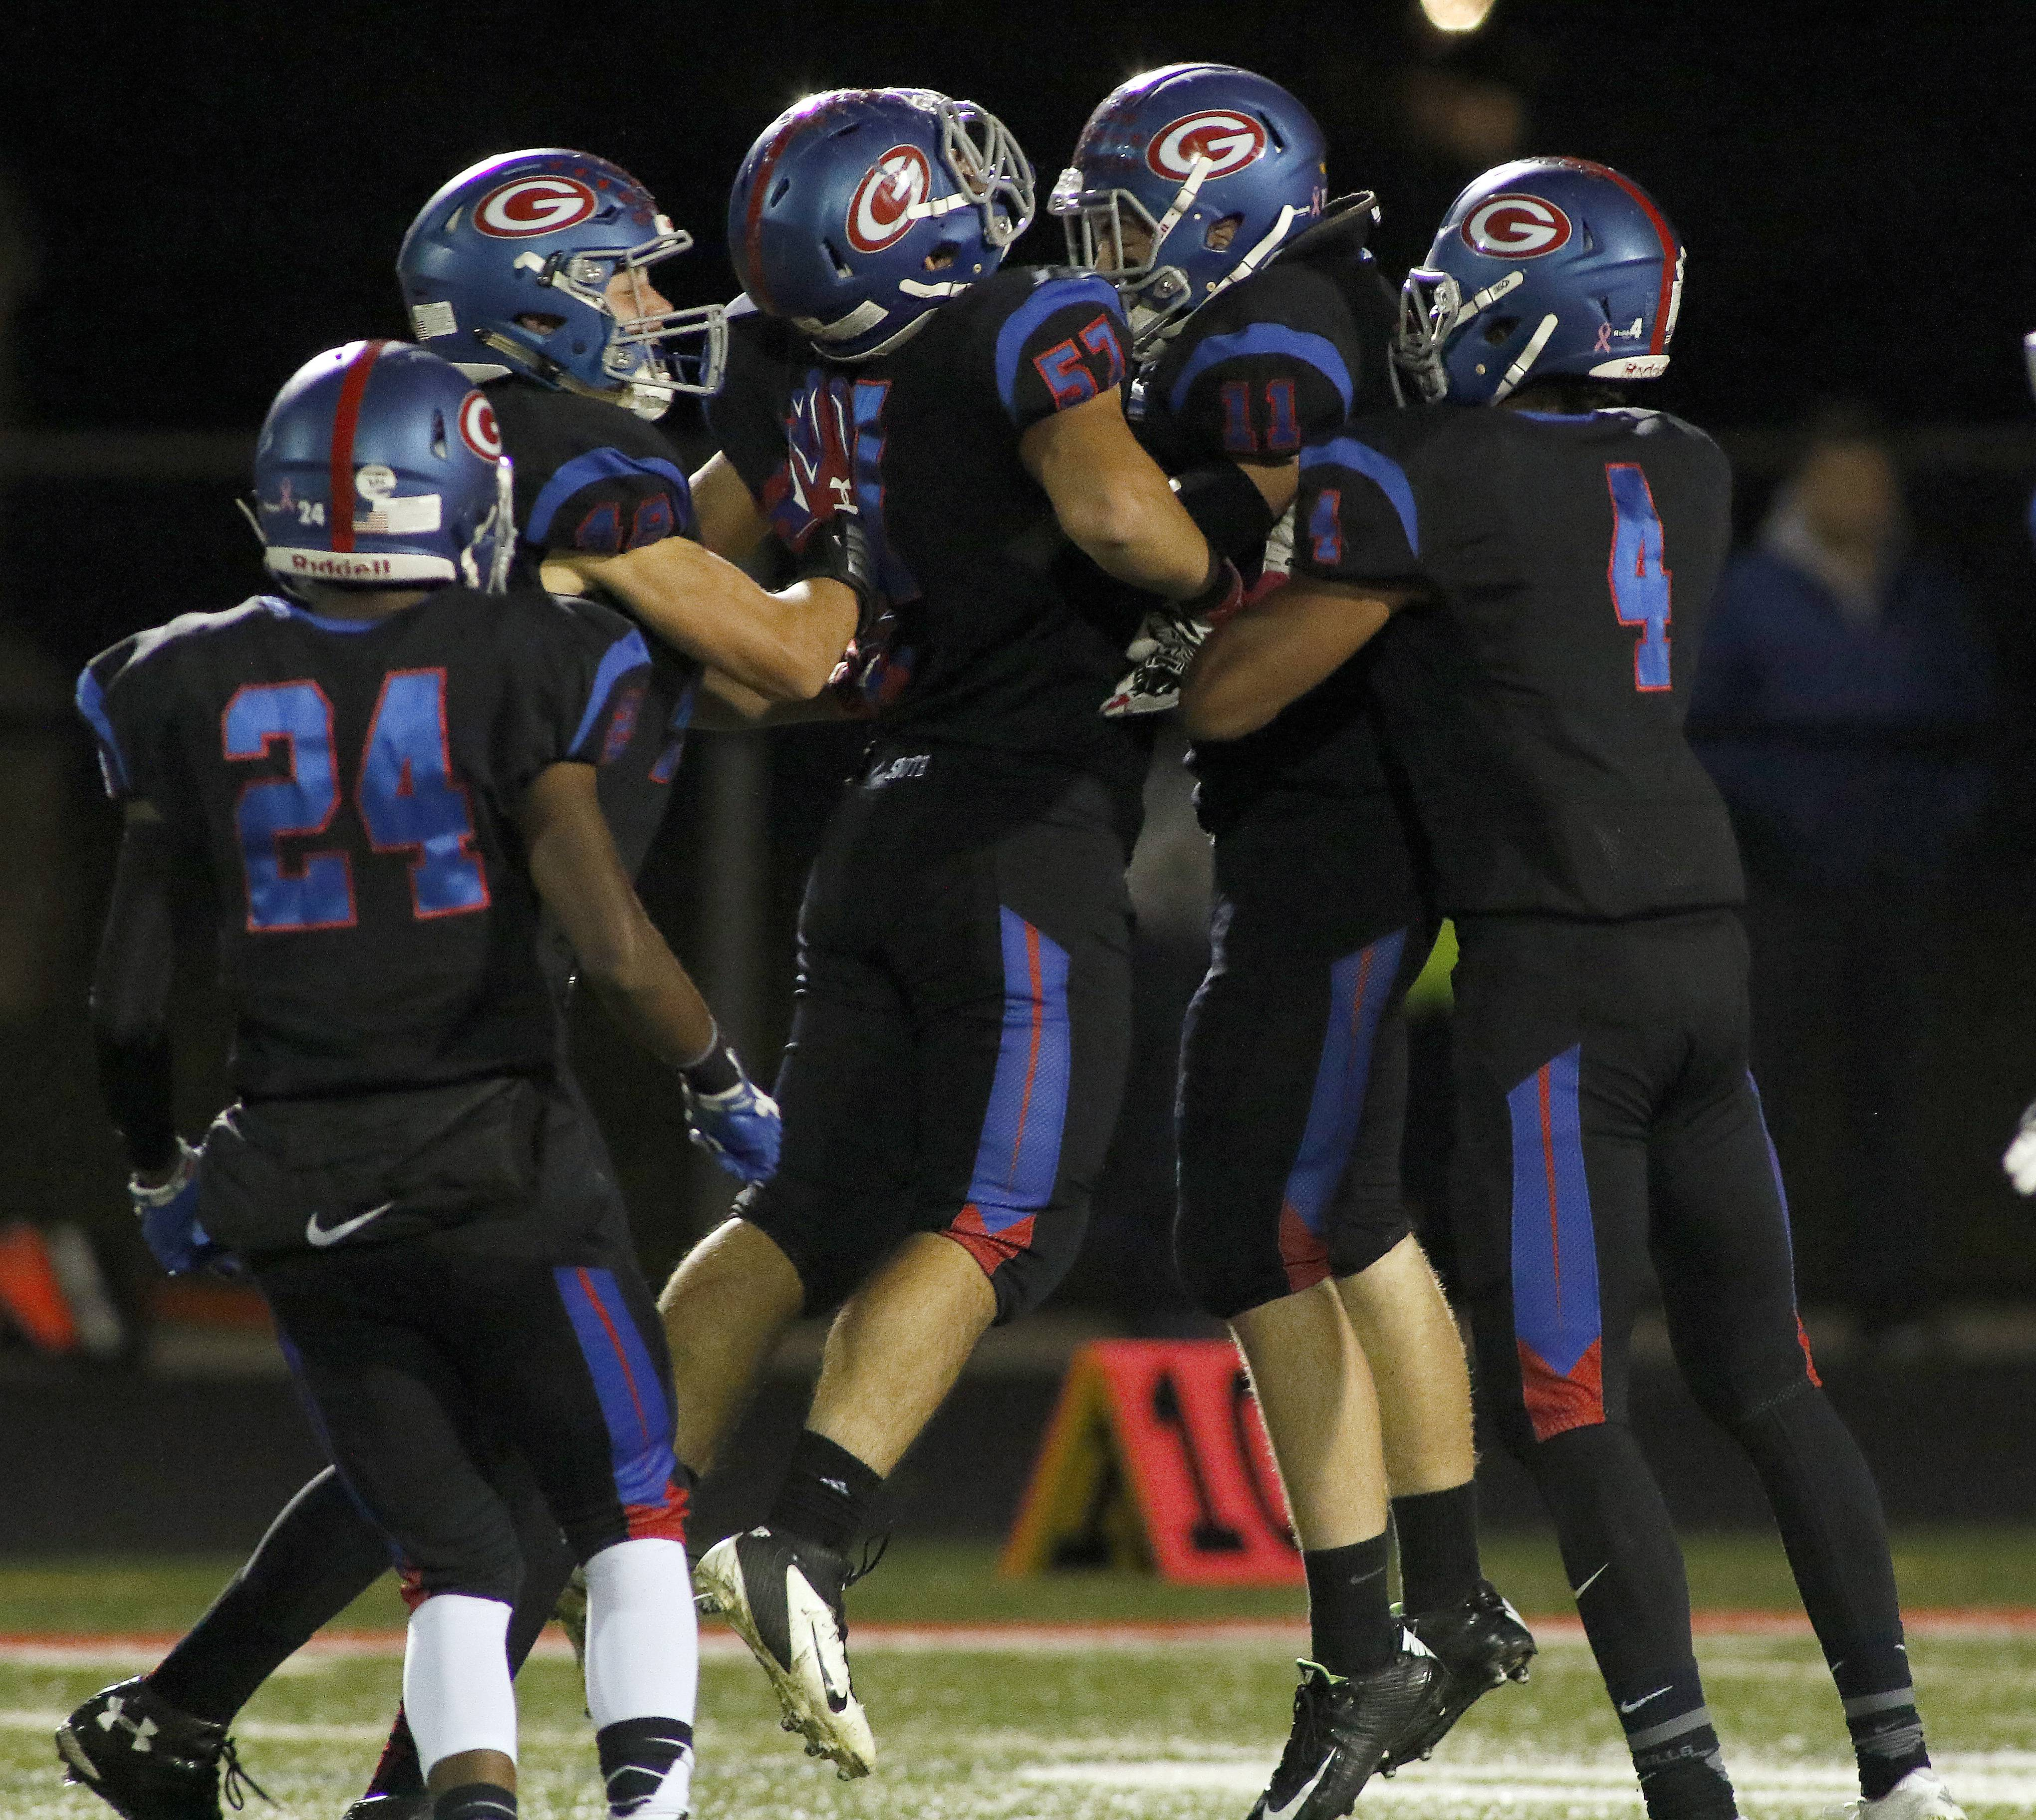 Takeaways from Friday night football